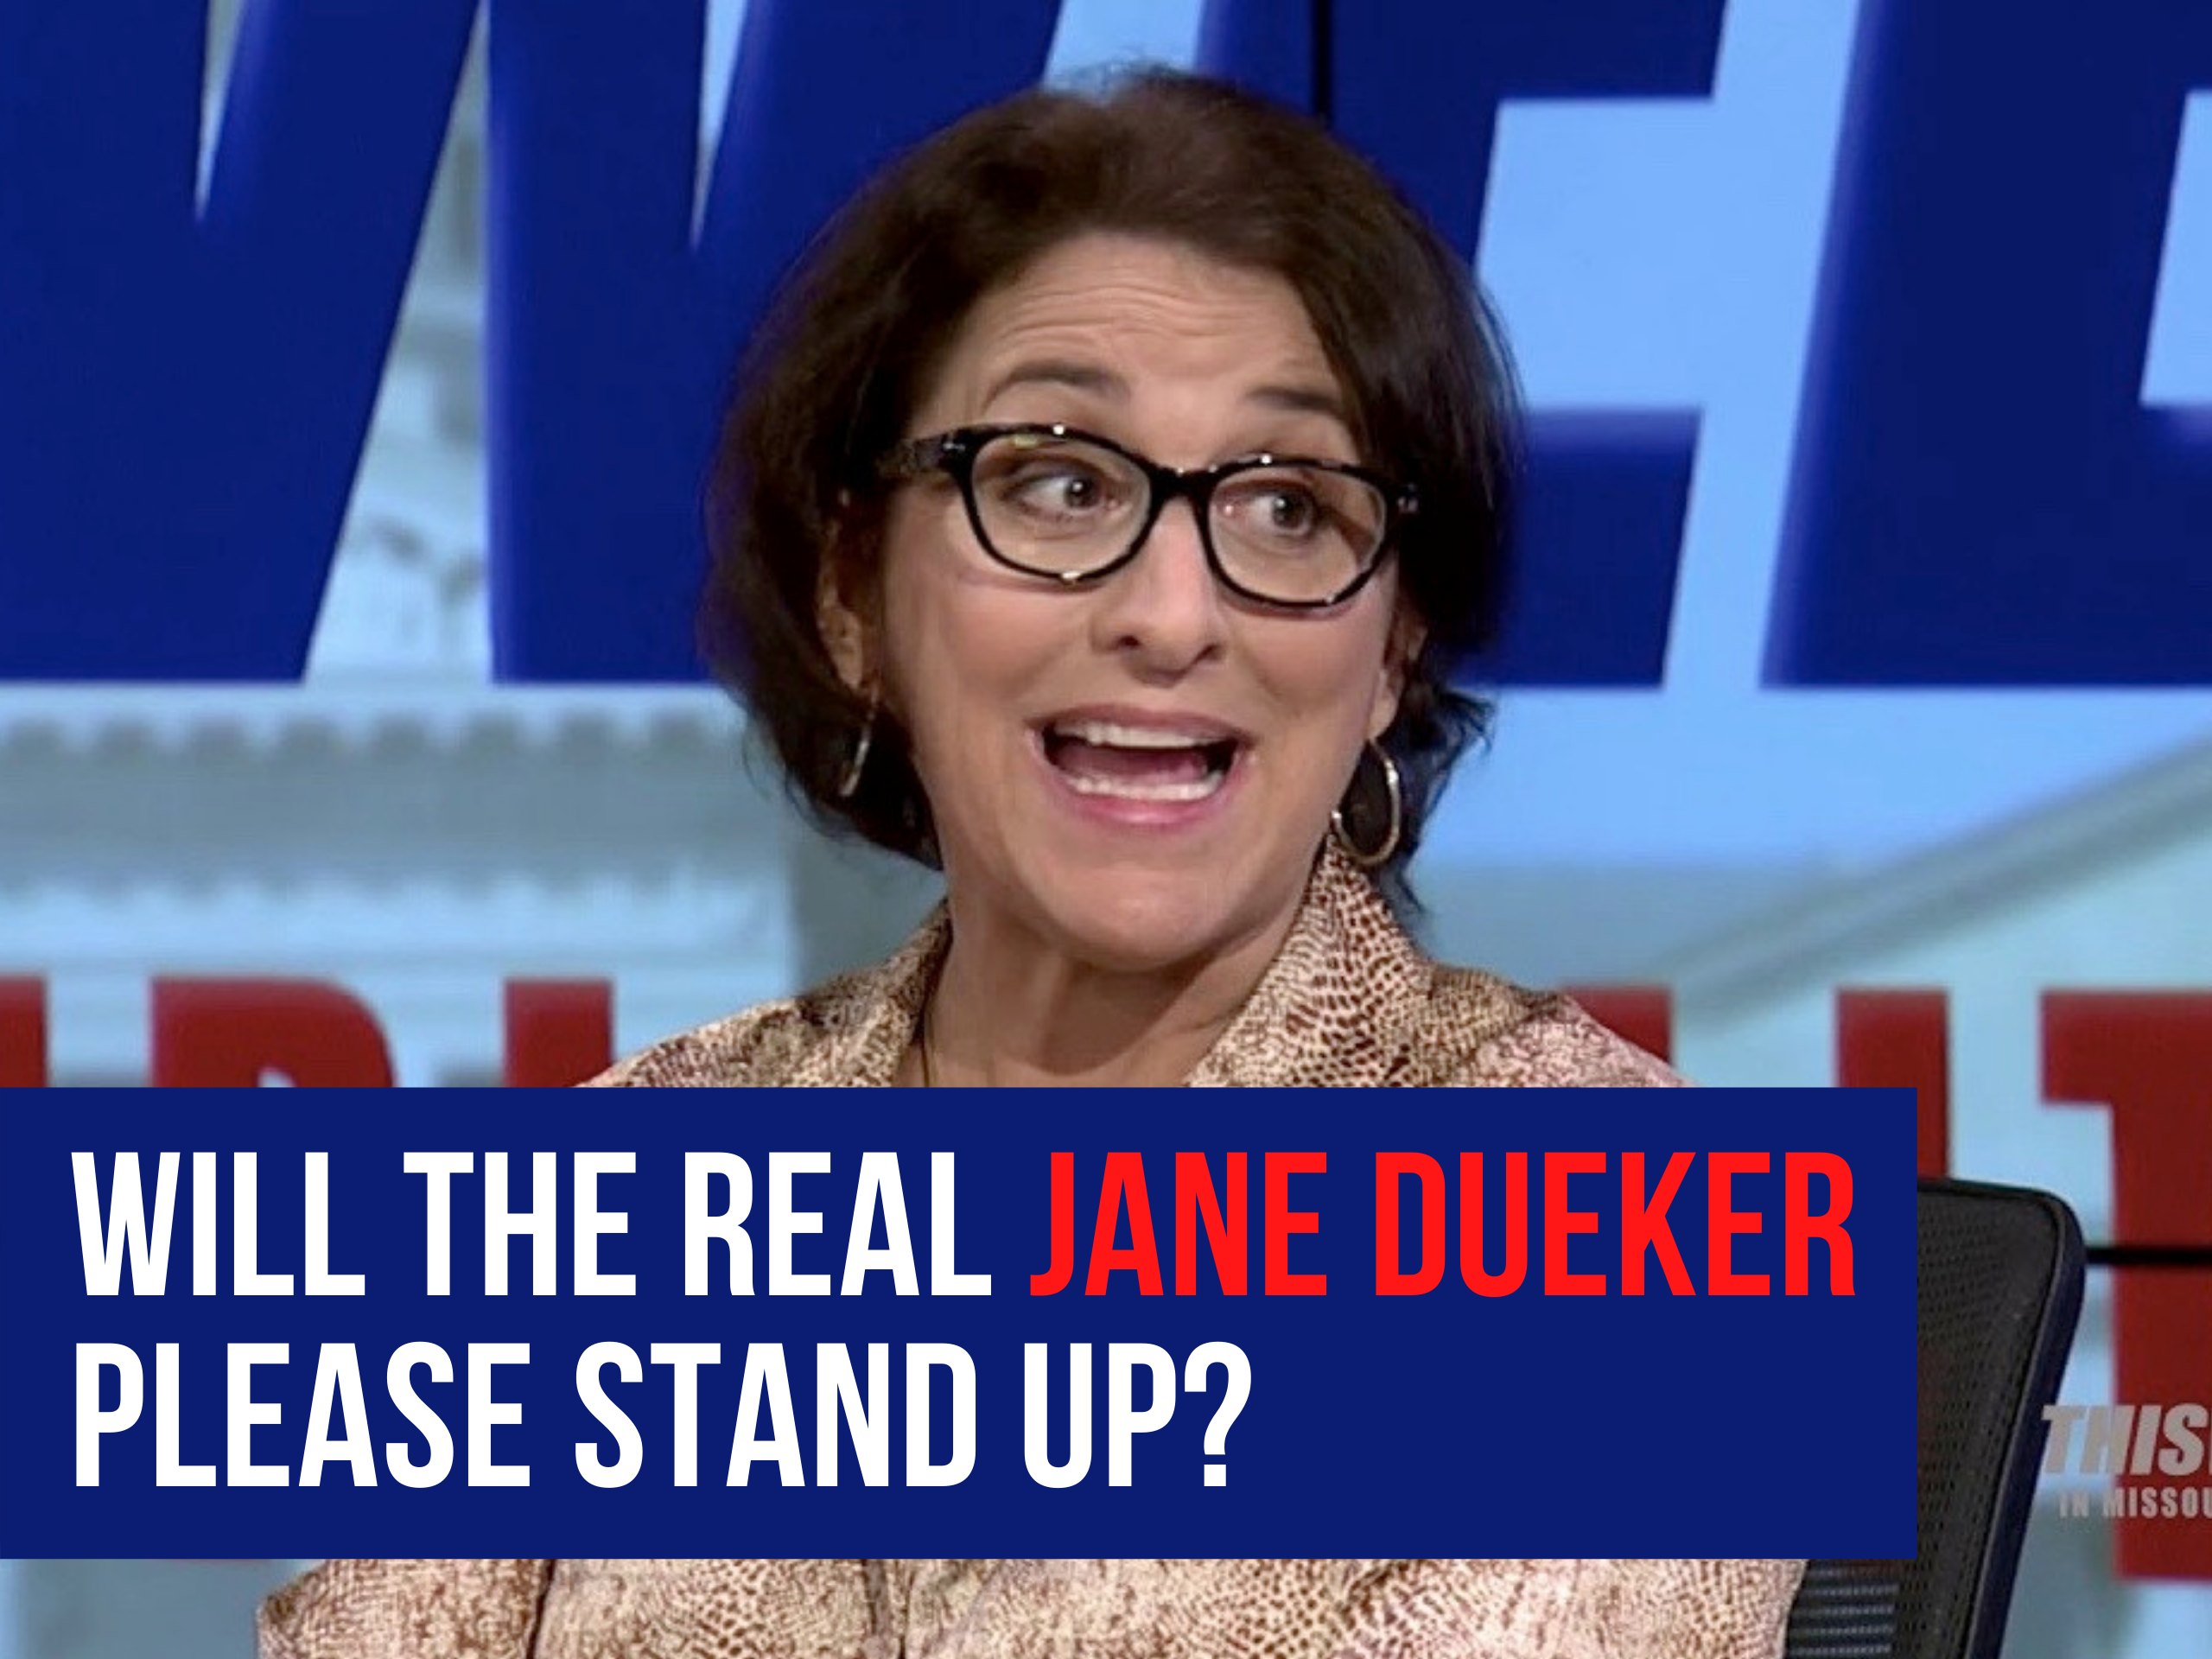 WILL THE REAL JANE DUEKER PLEASE STAND UP?